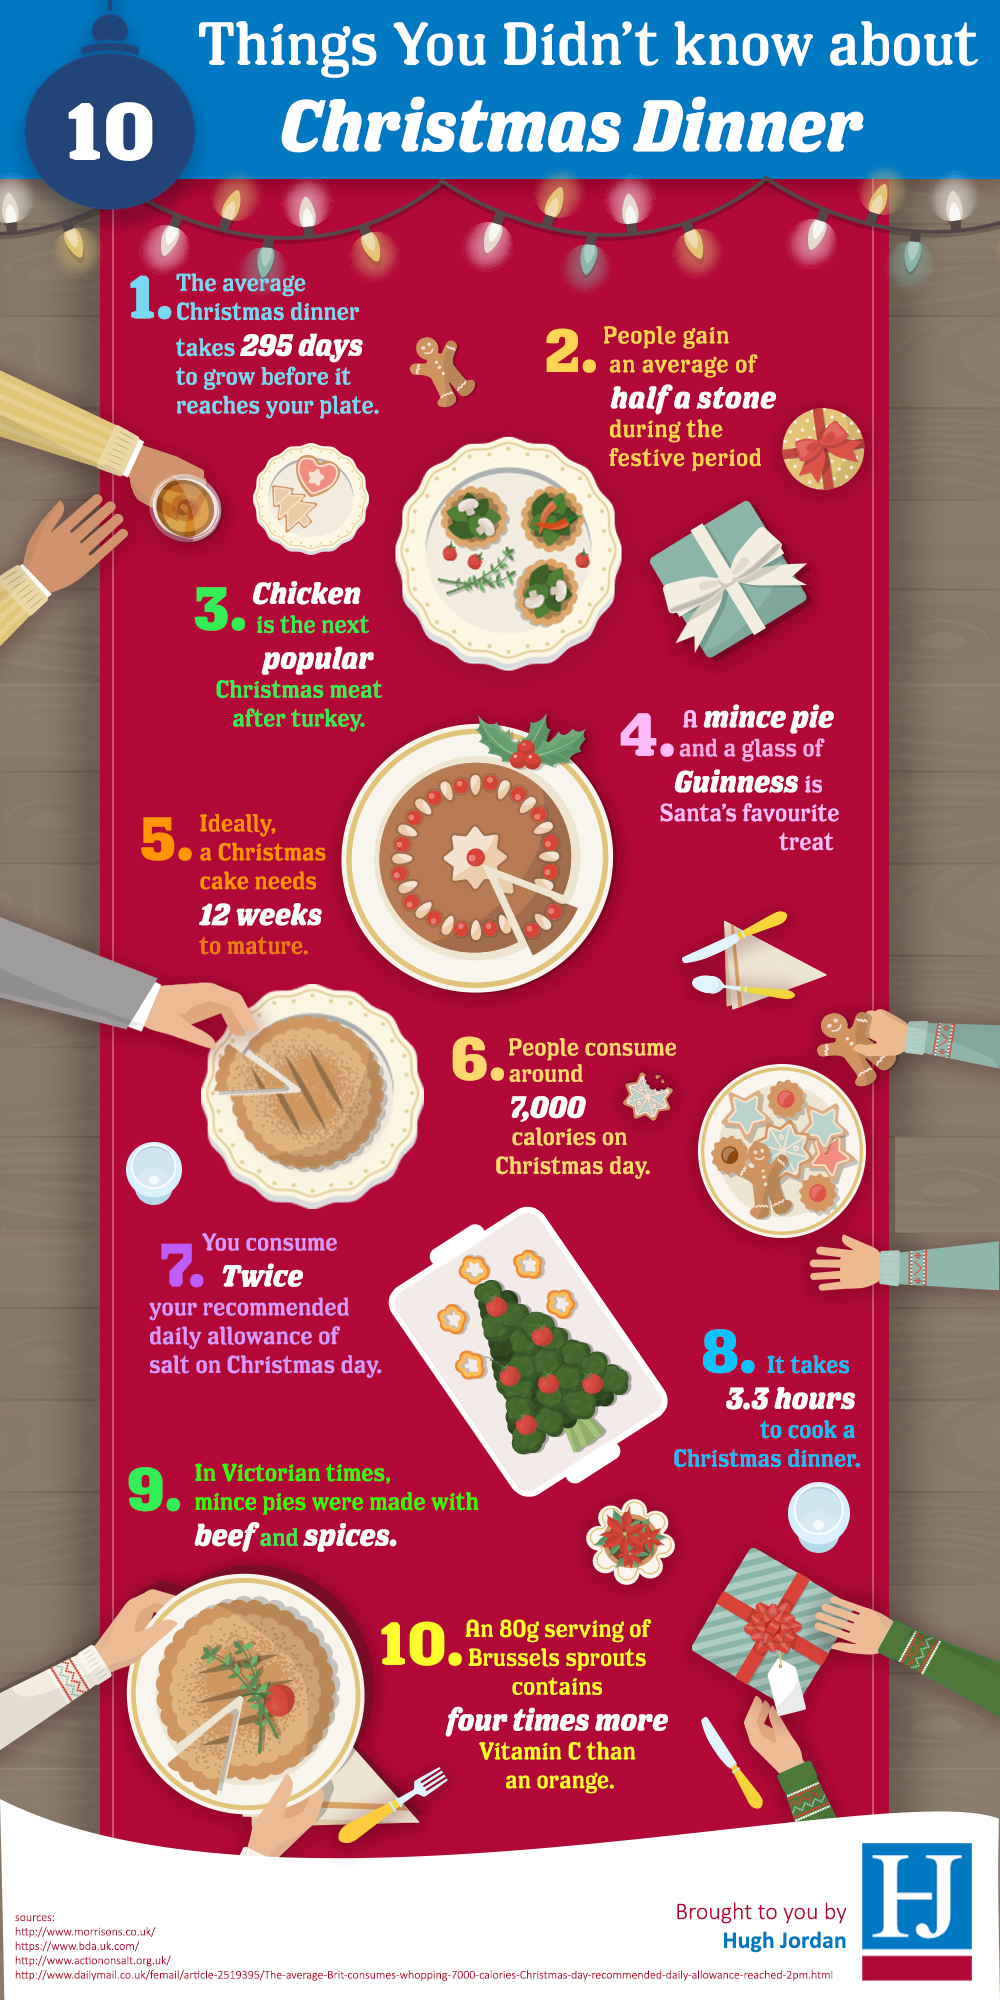 10 Things You Didn't Know About Christmas Dinner